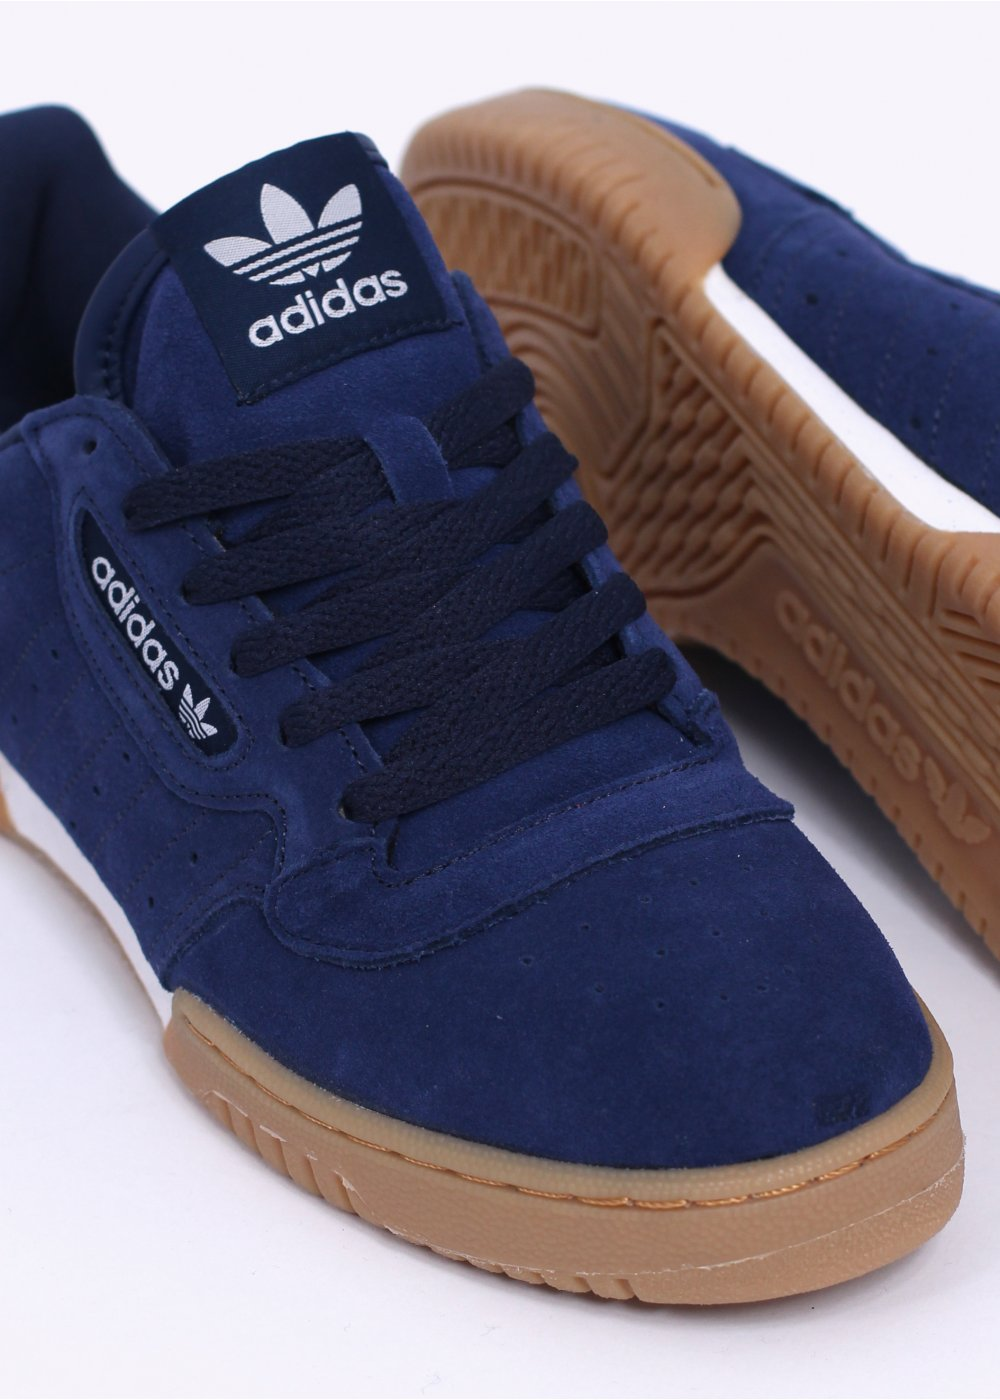 outlet boutique huge selection of offer discounts adidas Originals Footwear Powerphase OG Trainers - Dark Blue